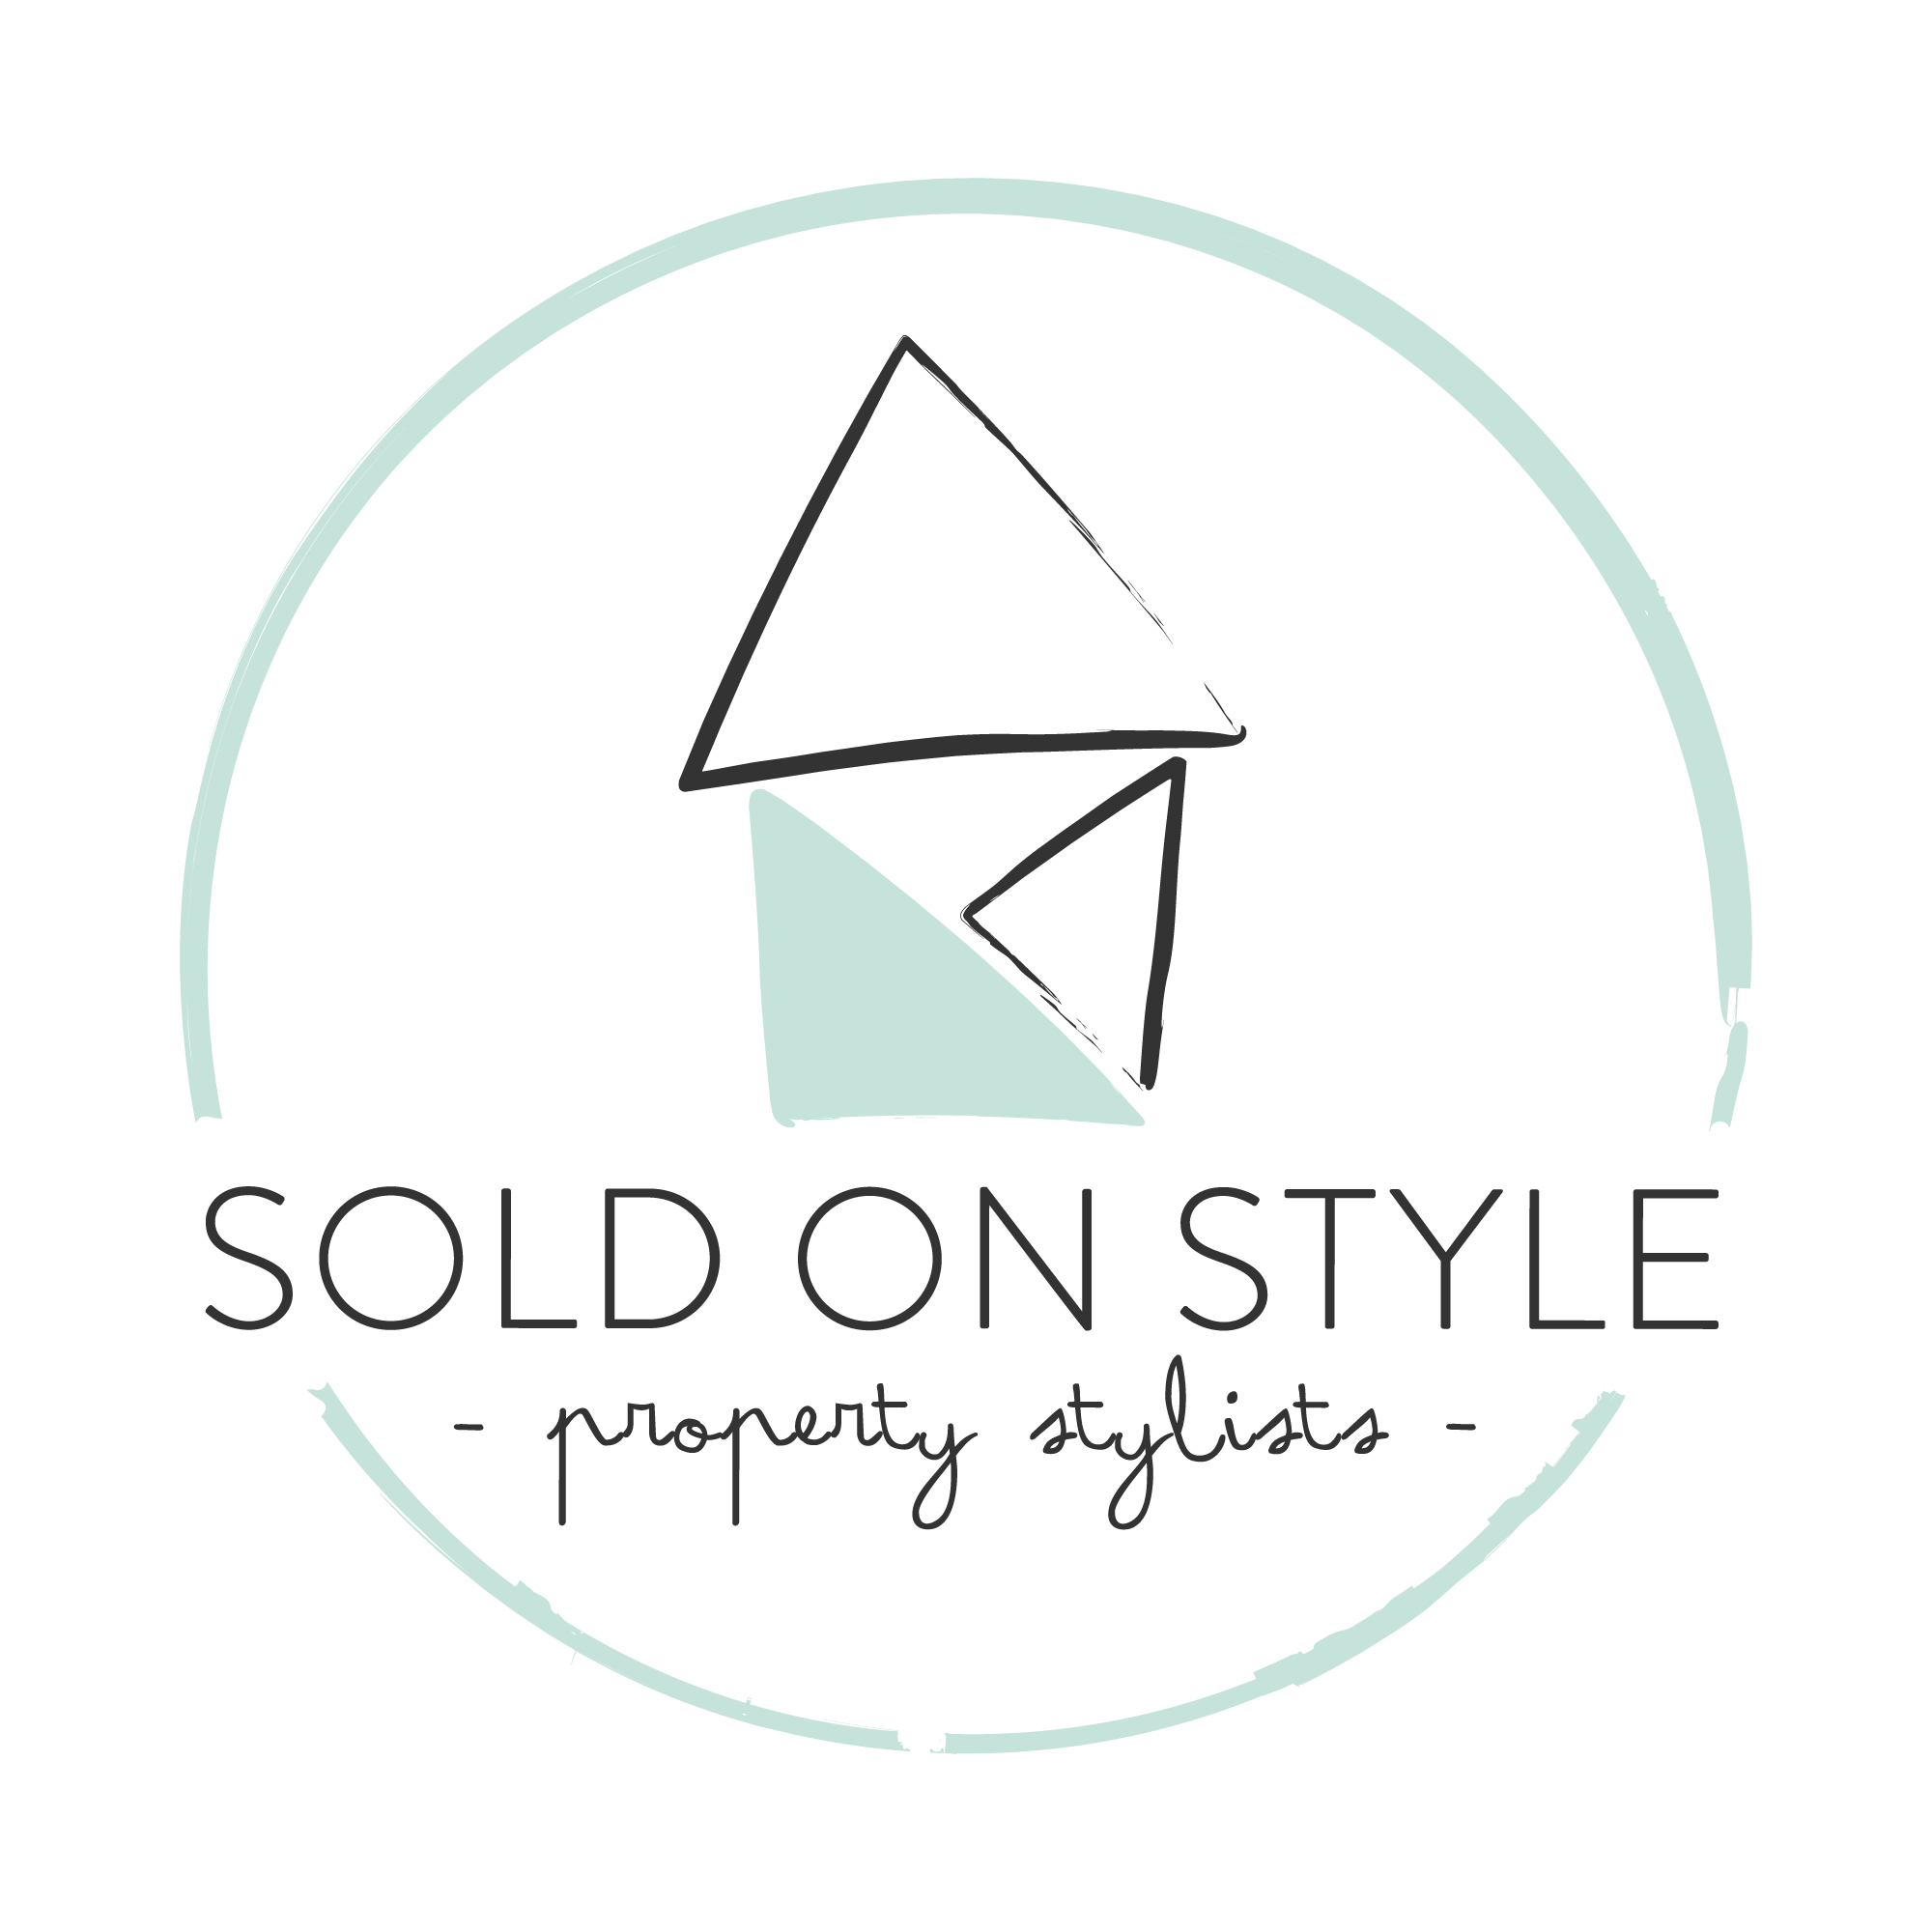 create a stylish logo for a stylish property staging company!